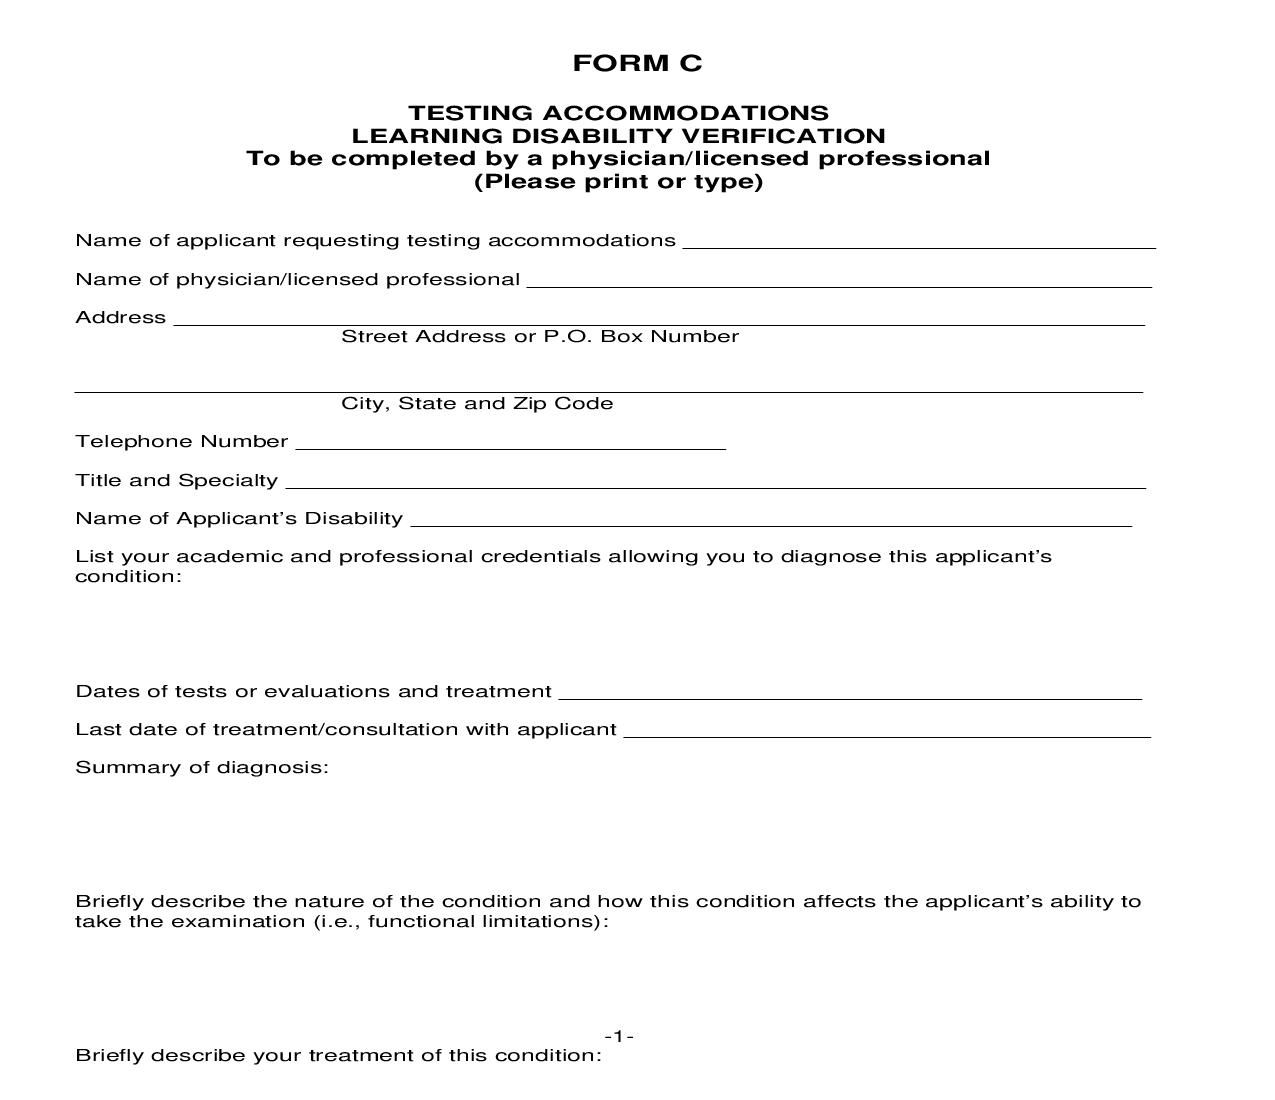 Application For Testing Accommodations - Form C | Pdf Fpdf Doc Docx | Iowa